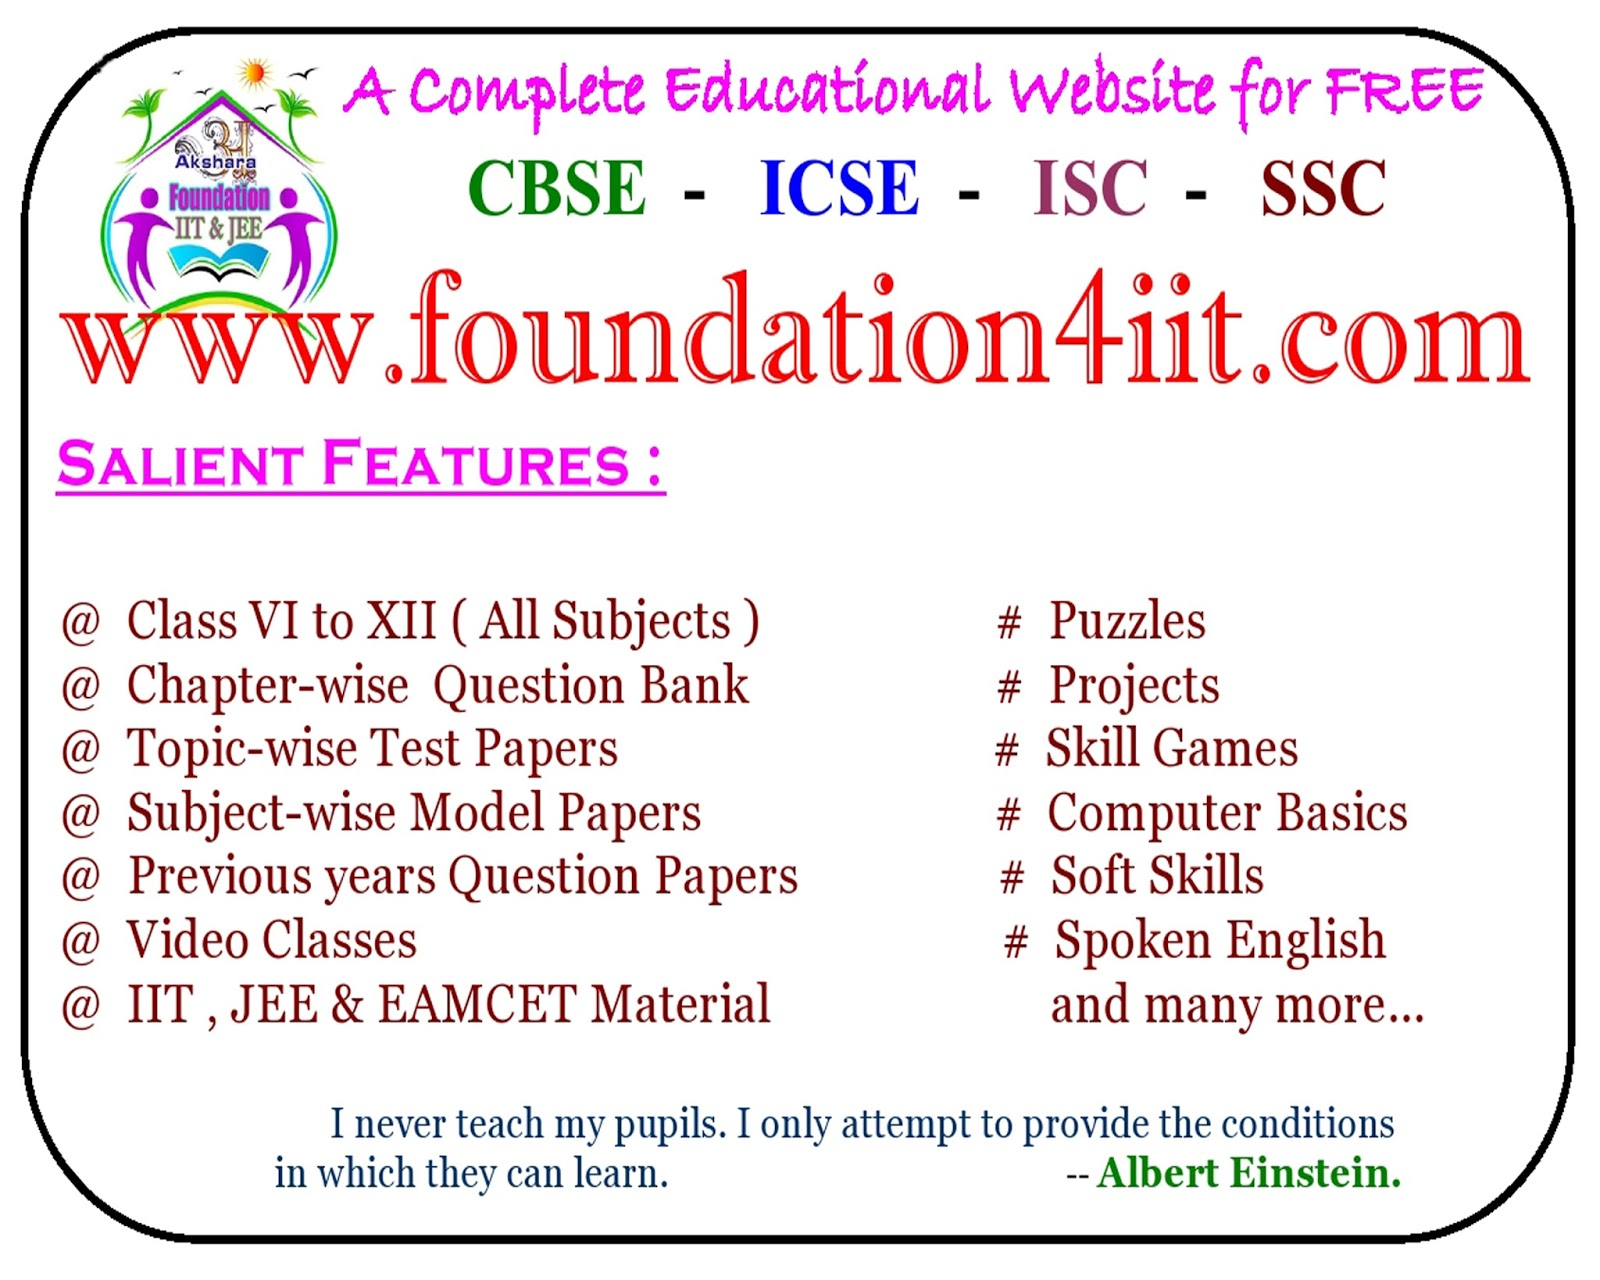 A plete Educational Website for FREE CONTACT US